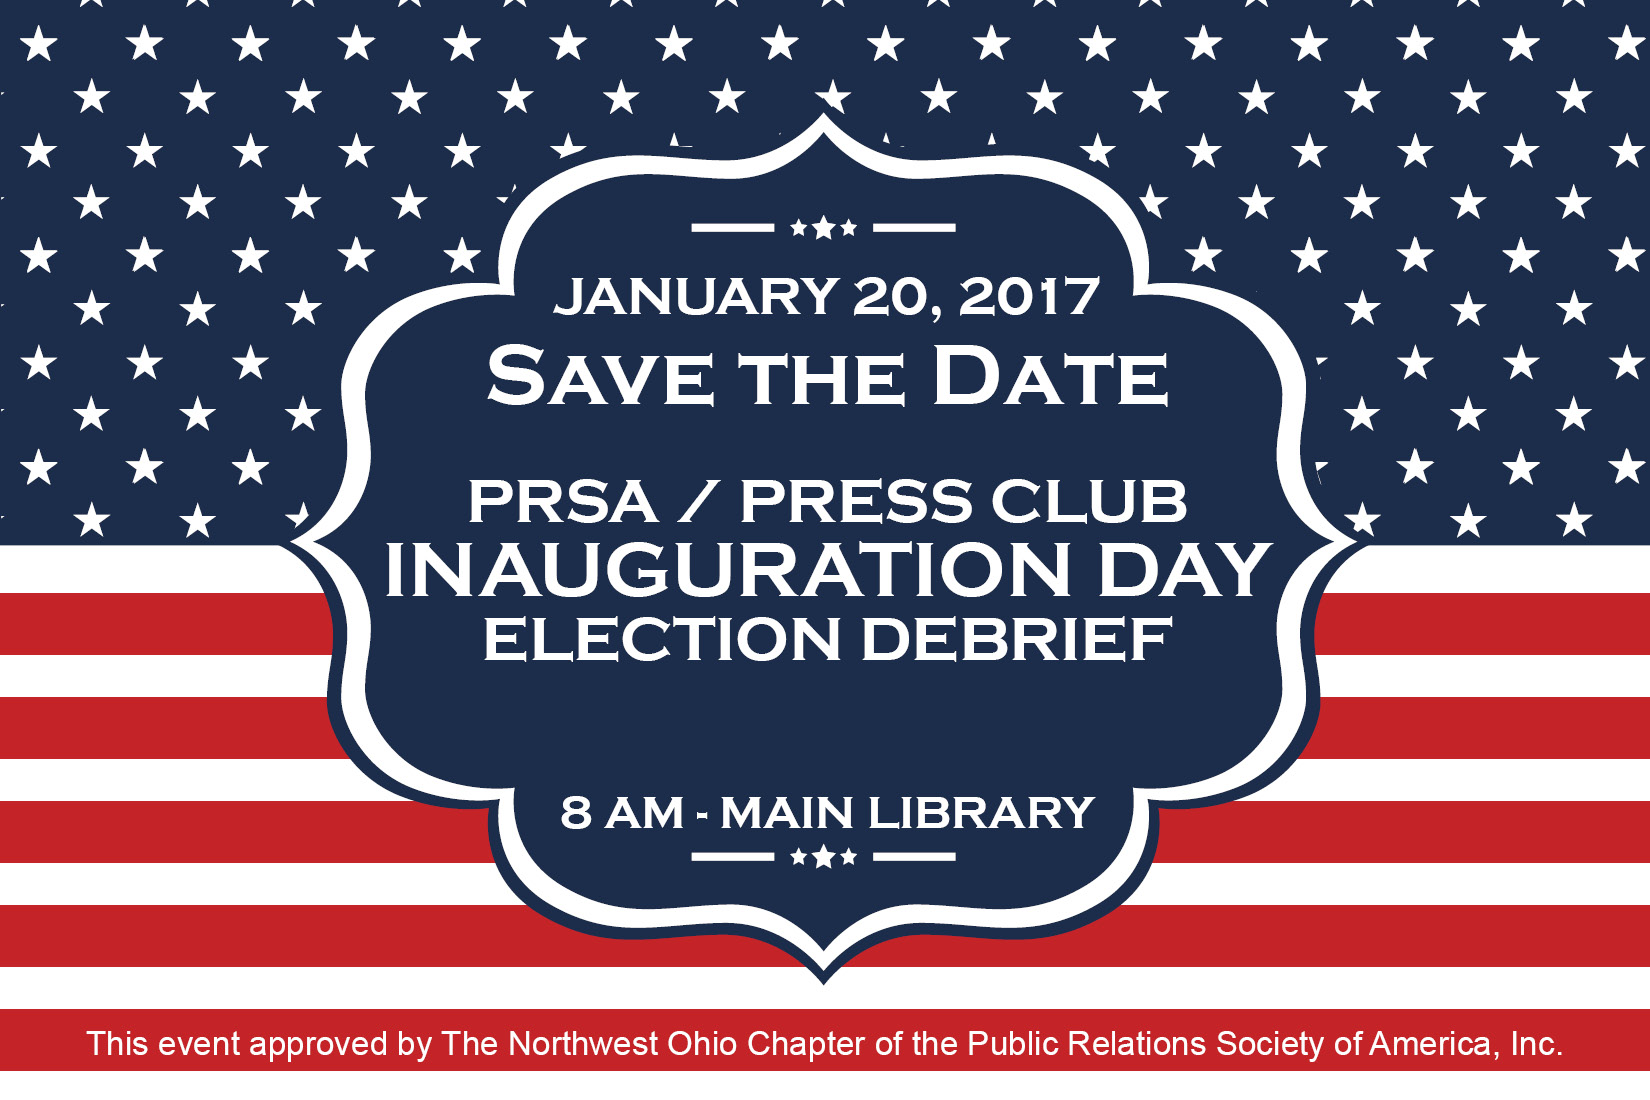 Save the Date for January 20, 2017 PRSA Meeting